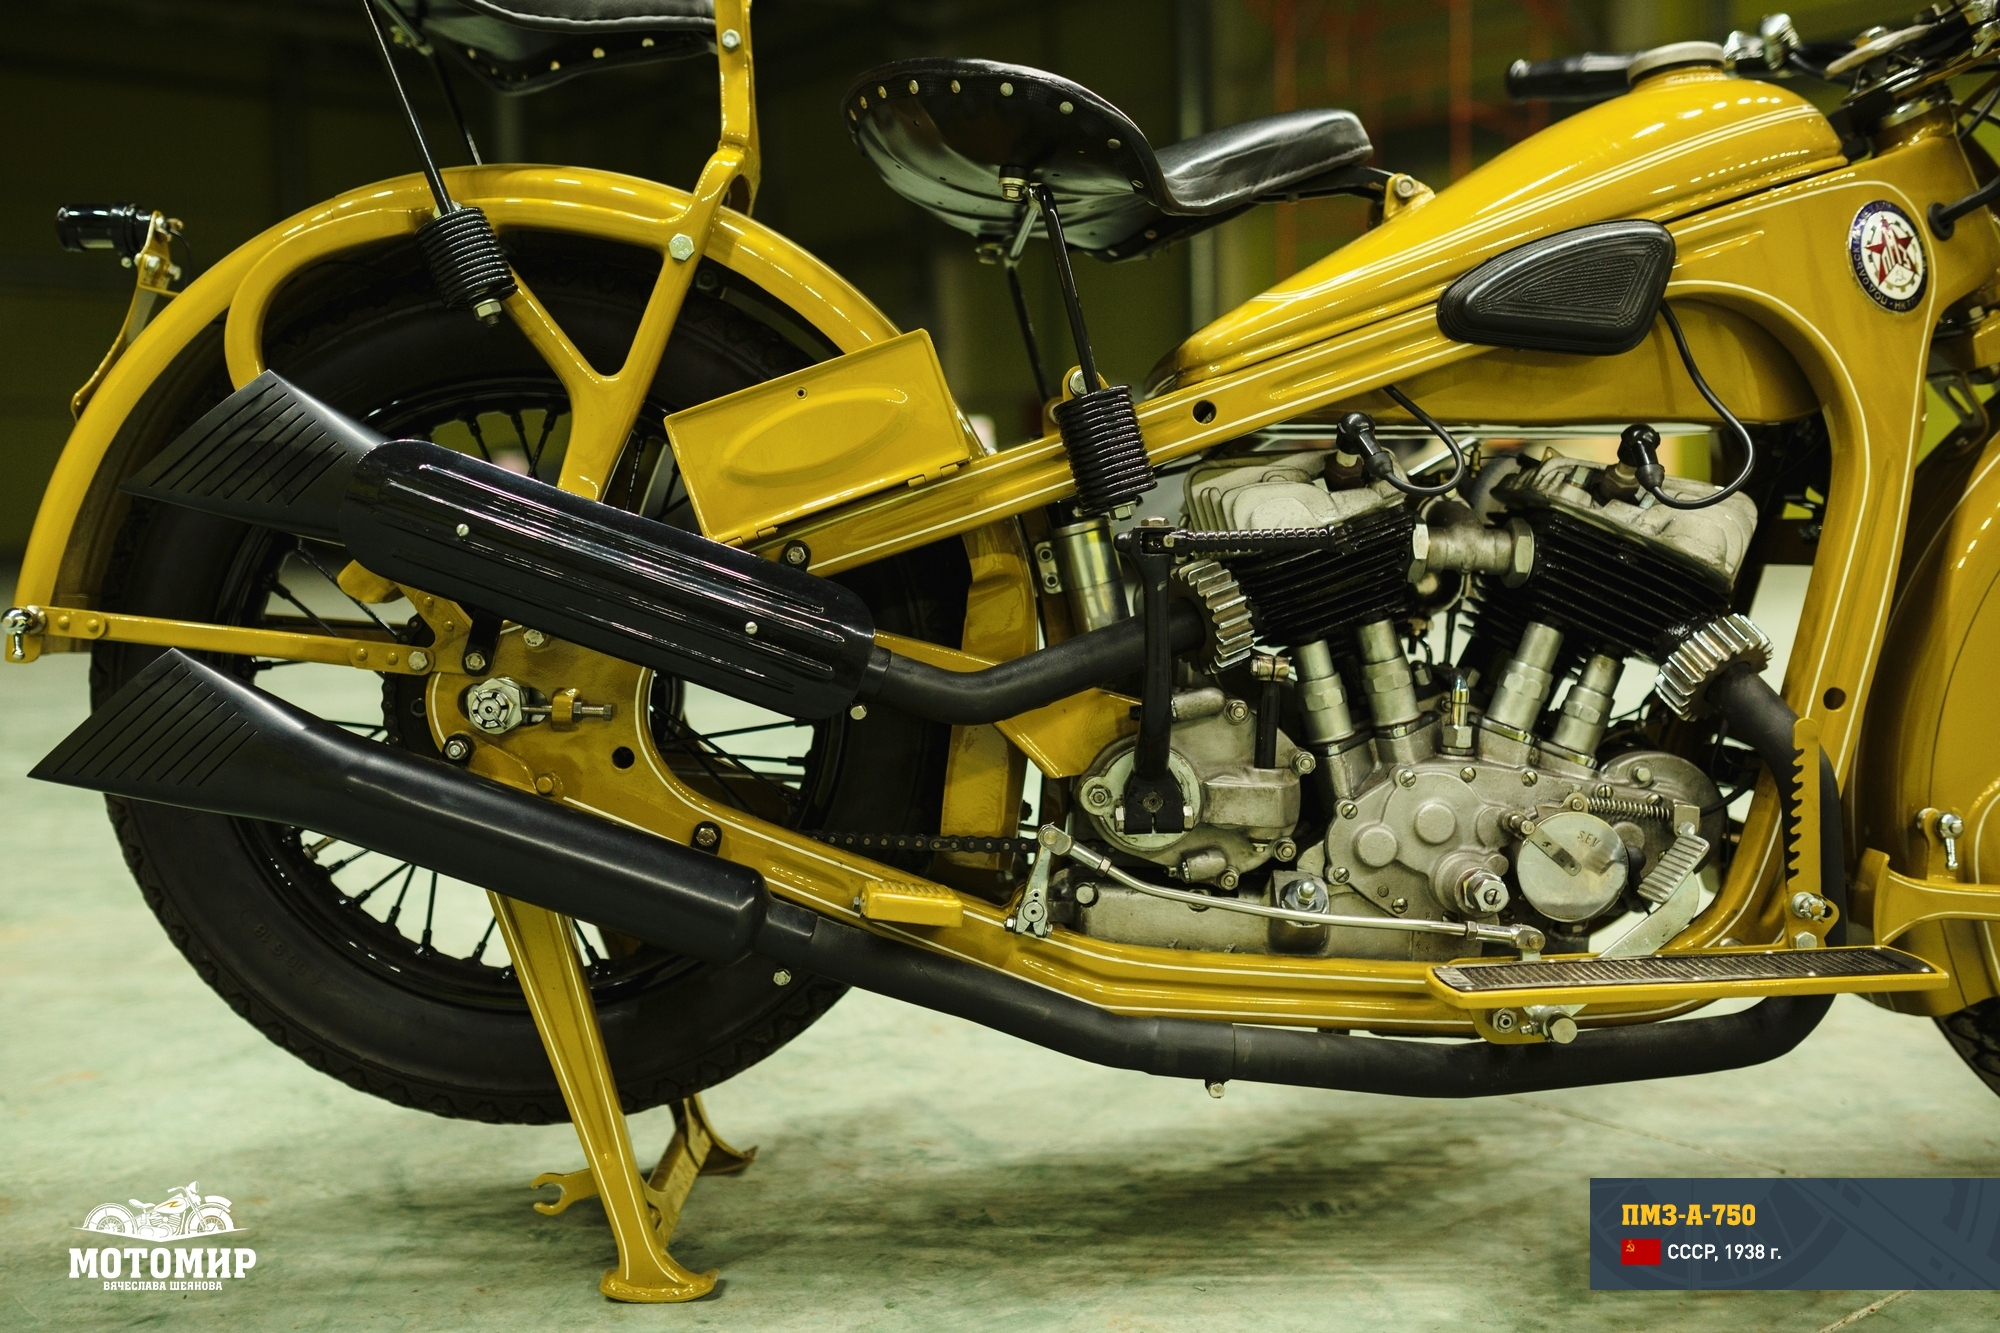 Motorcycle PMZ-A-750: technical specifications 78